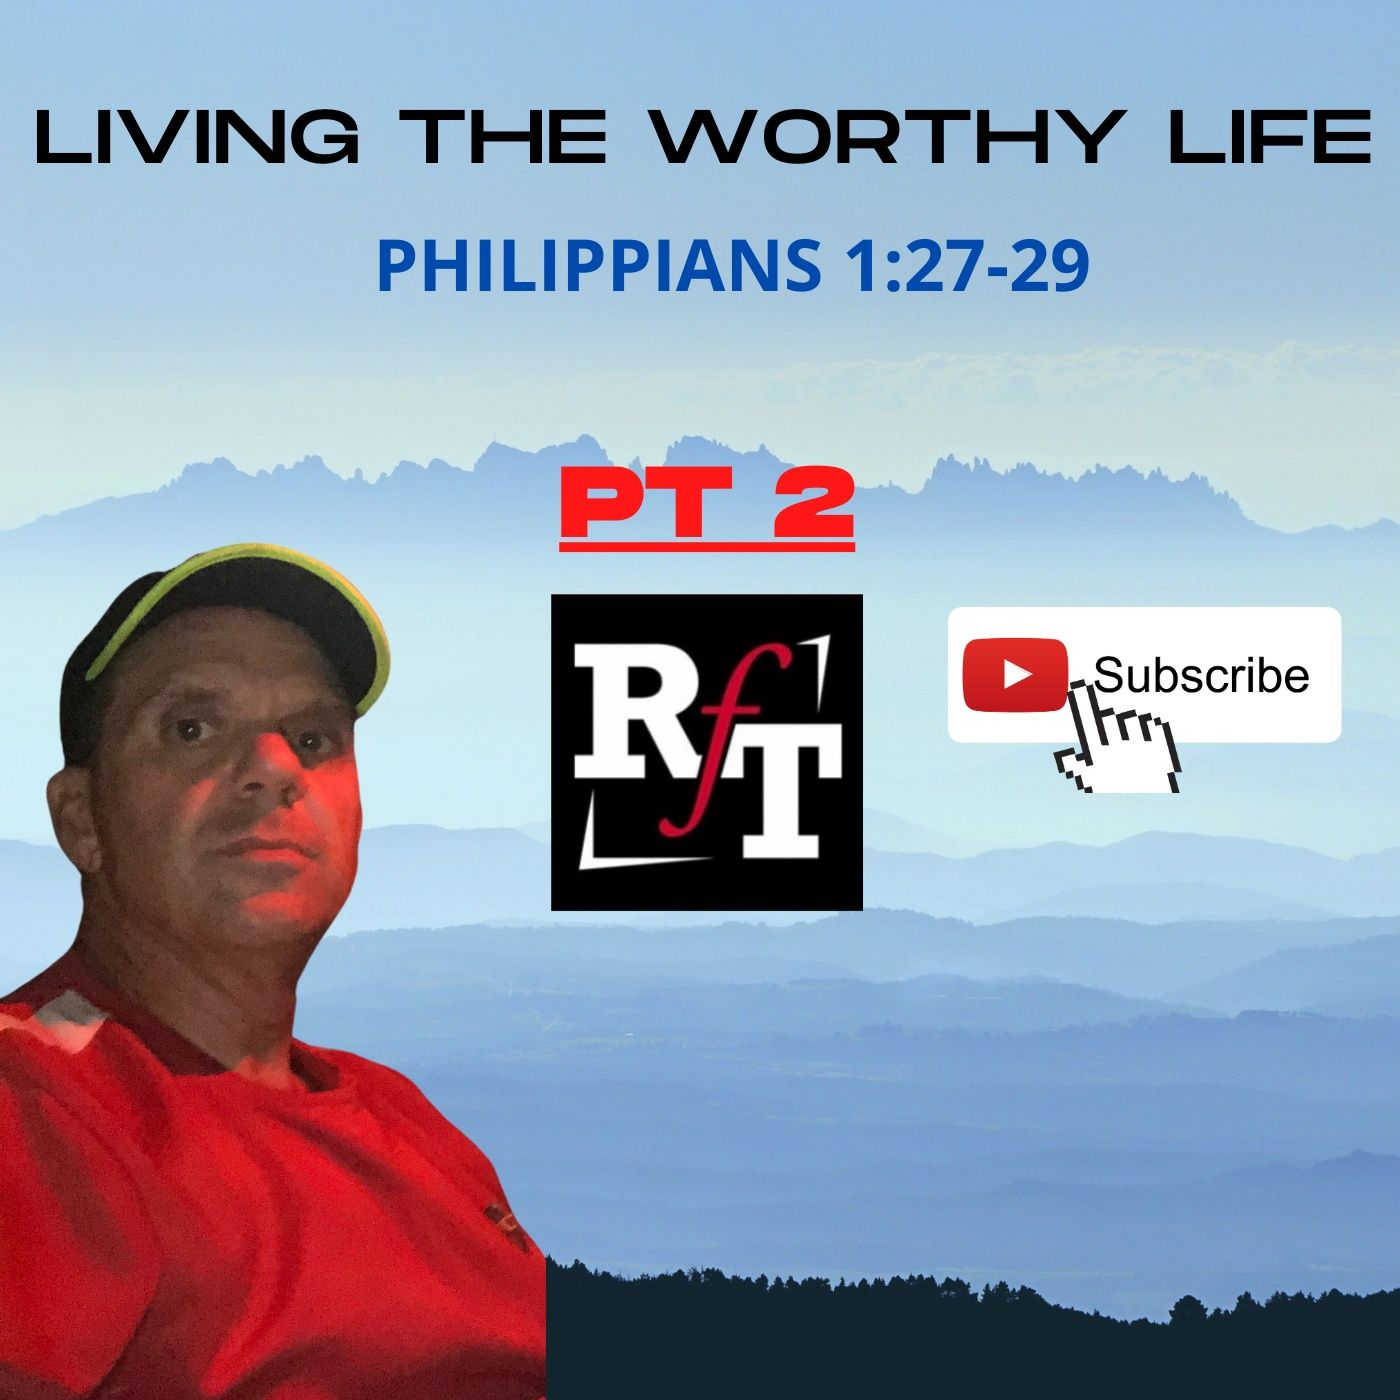 PT2-The Worthy Life - 3:15:21, 4.29 PM